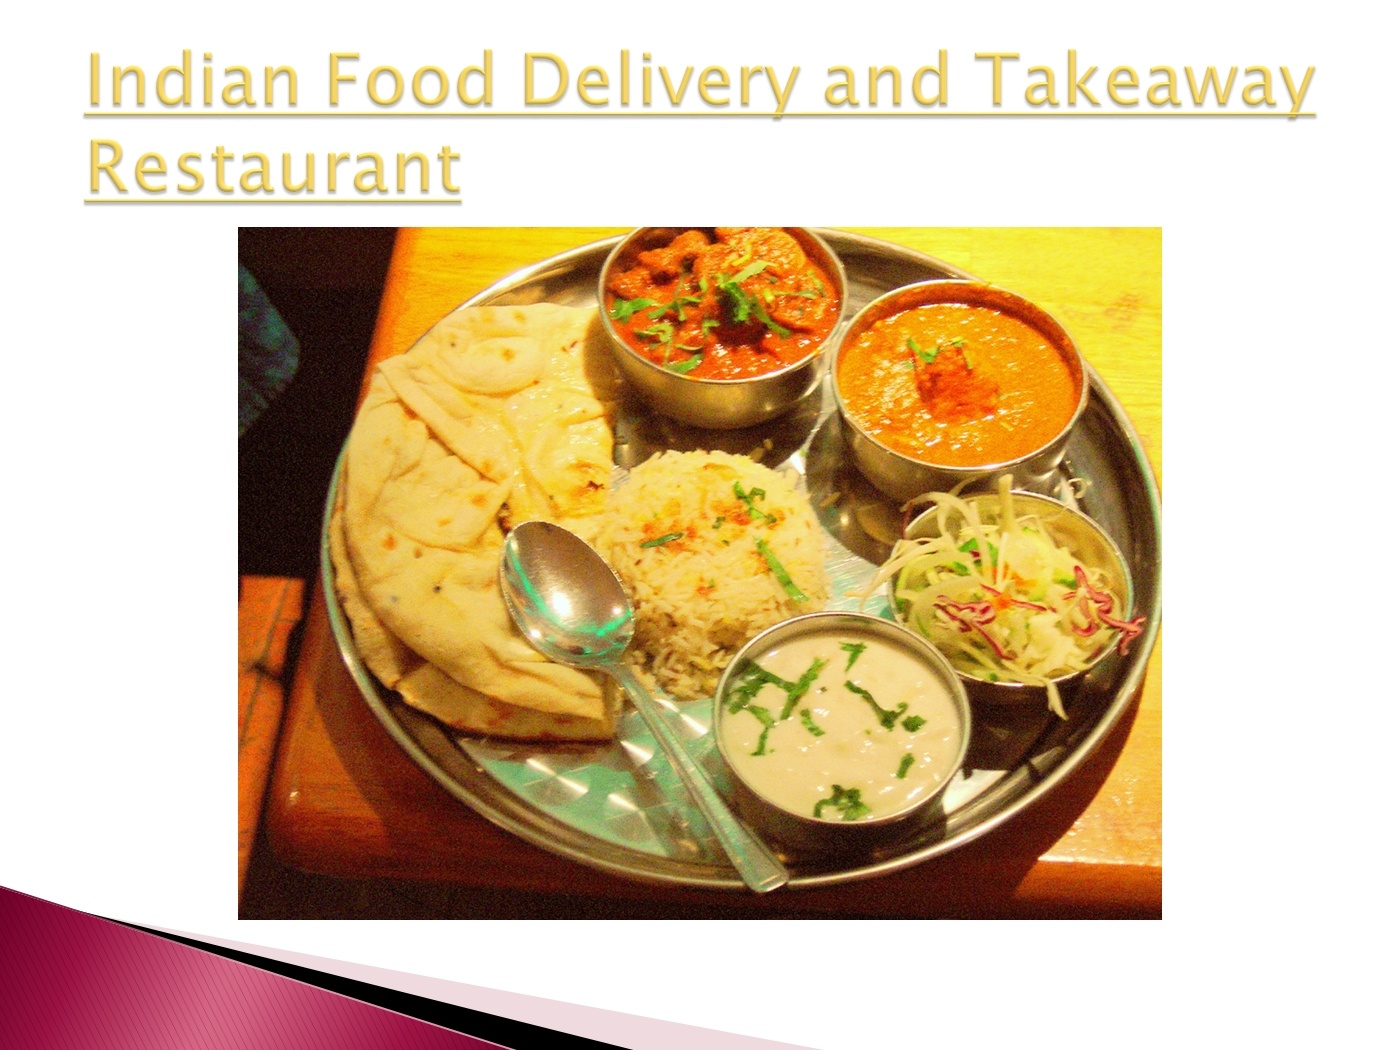 Indian food delivery and takeaway hamilton nz indian essencepptx indian food delivery and takeaway hamilton nz indian essencepptx powerpoint presentation ppt forumfinder Images